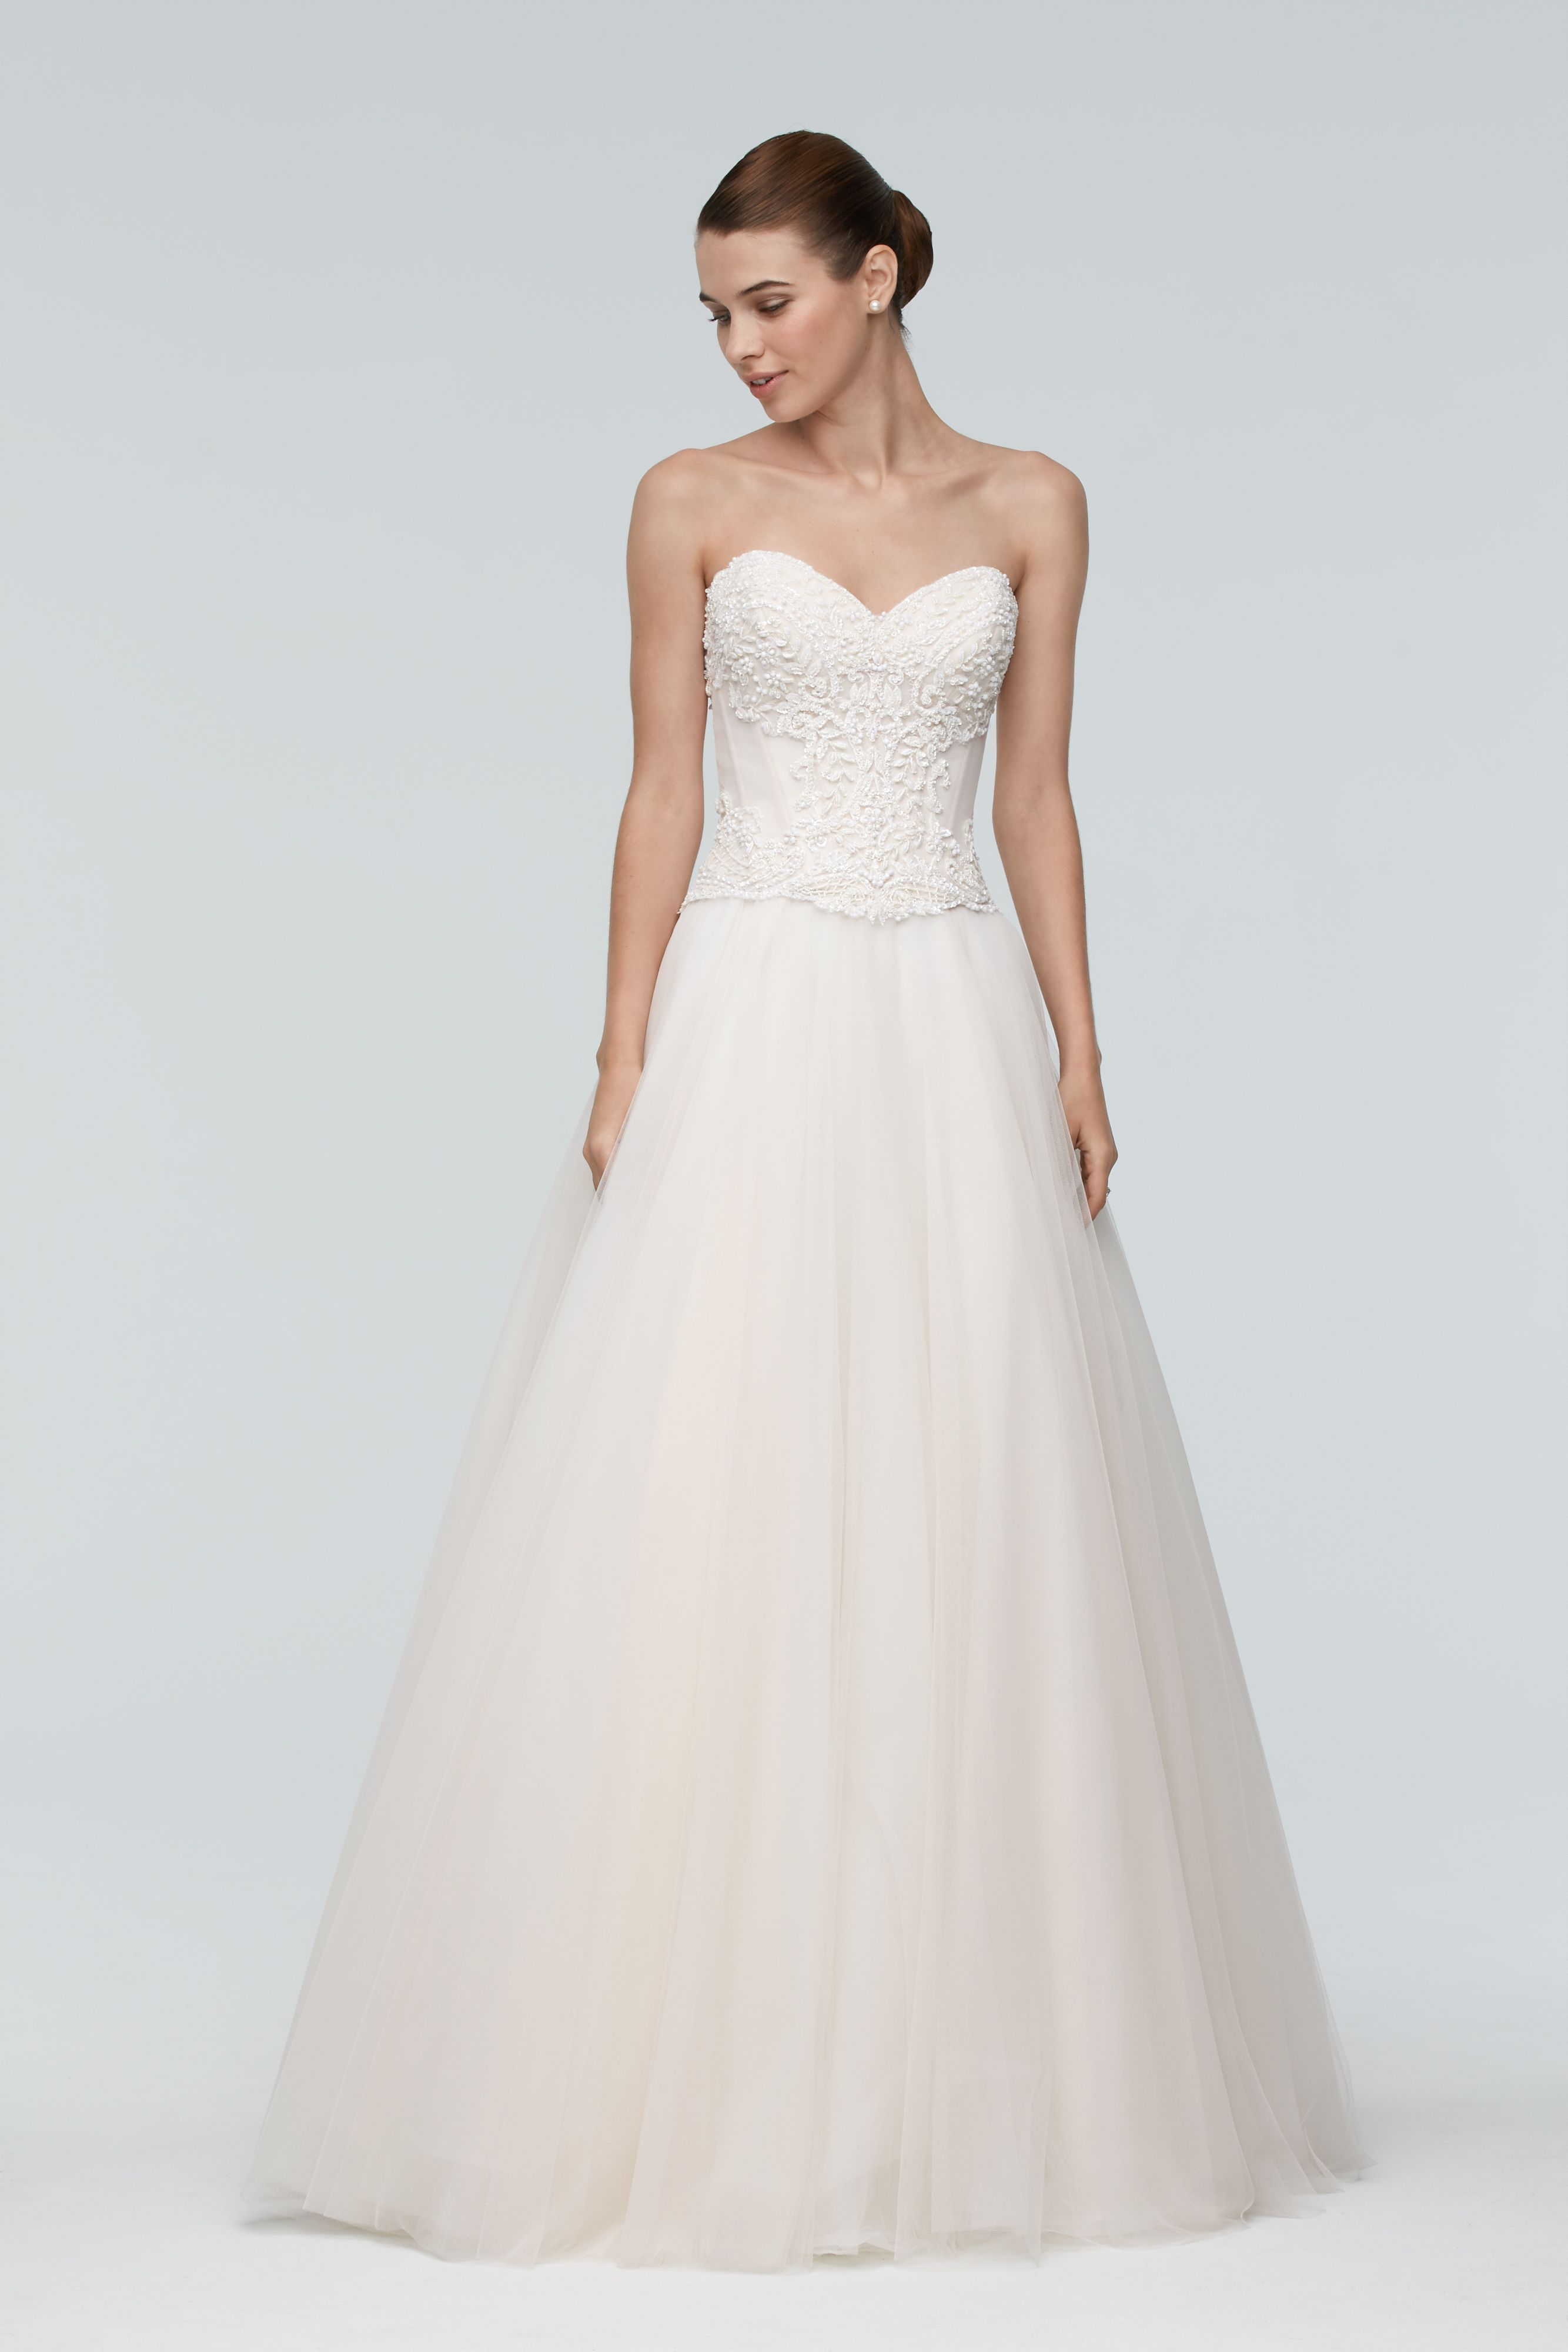 Shop Designer Bridal Gowns Like The Keo Corset By Watters And Other Accessories At Blush